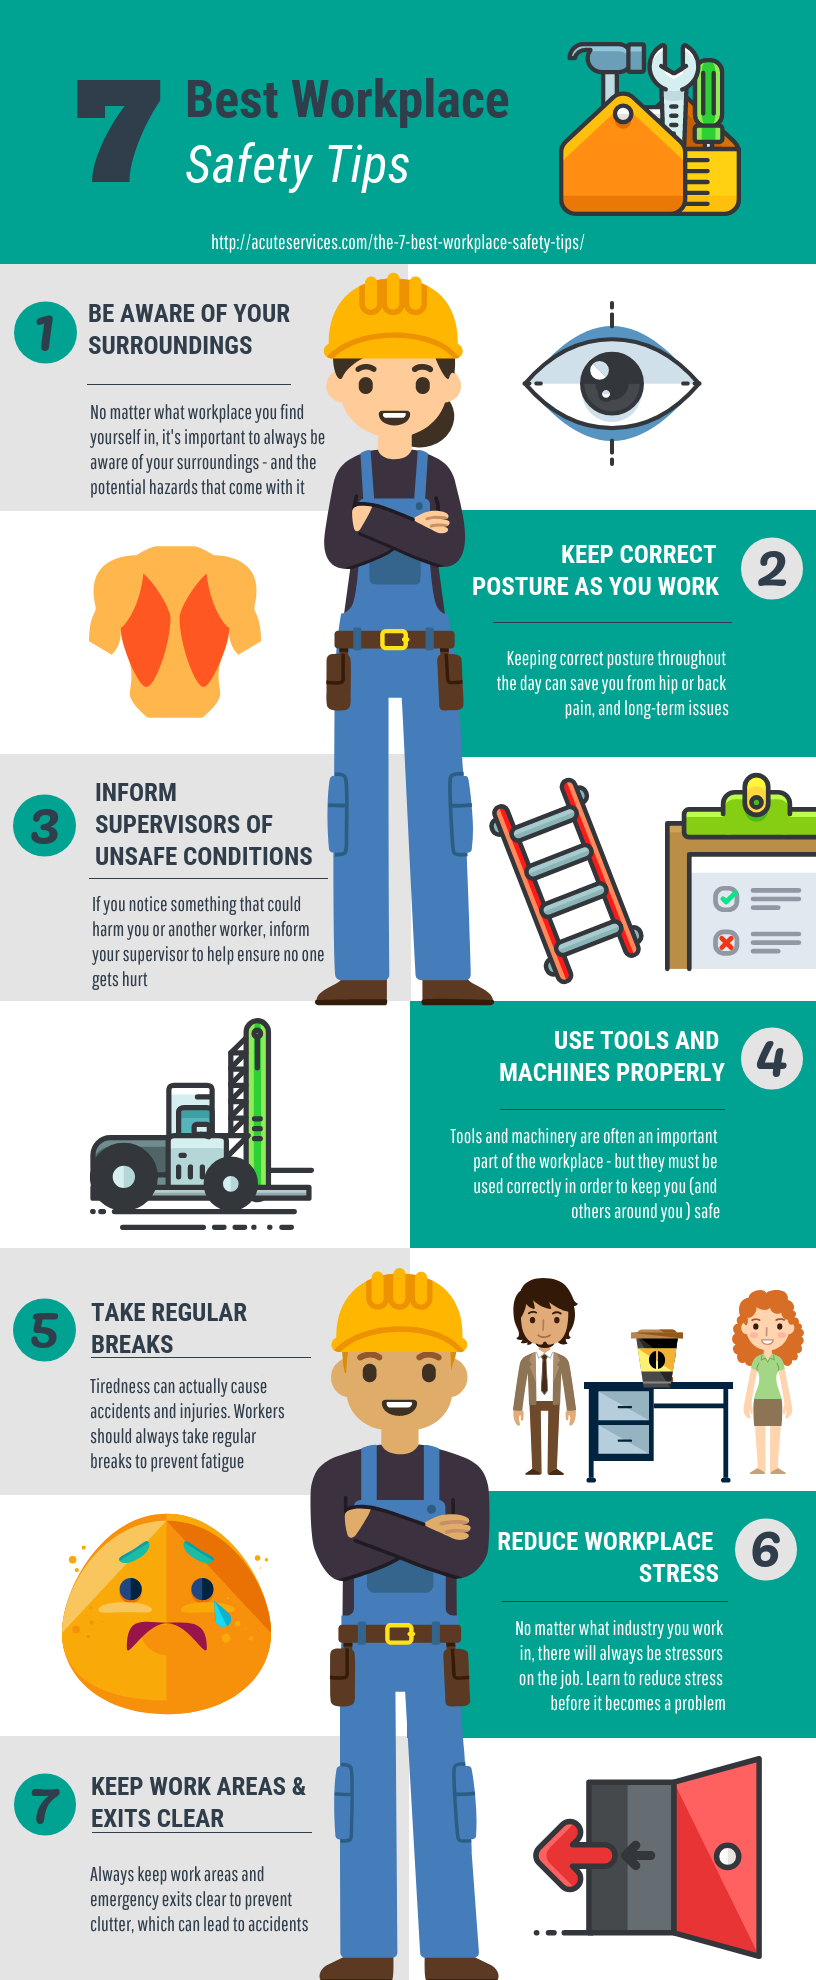 7 Best Workplace Safety Tips An Infographic Workplace Safety Tips Workplace Safety Safety Infographic